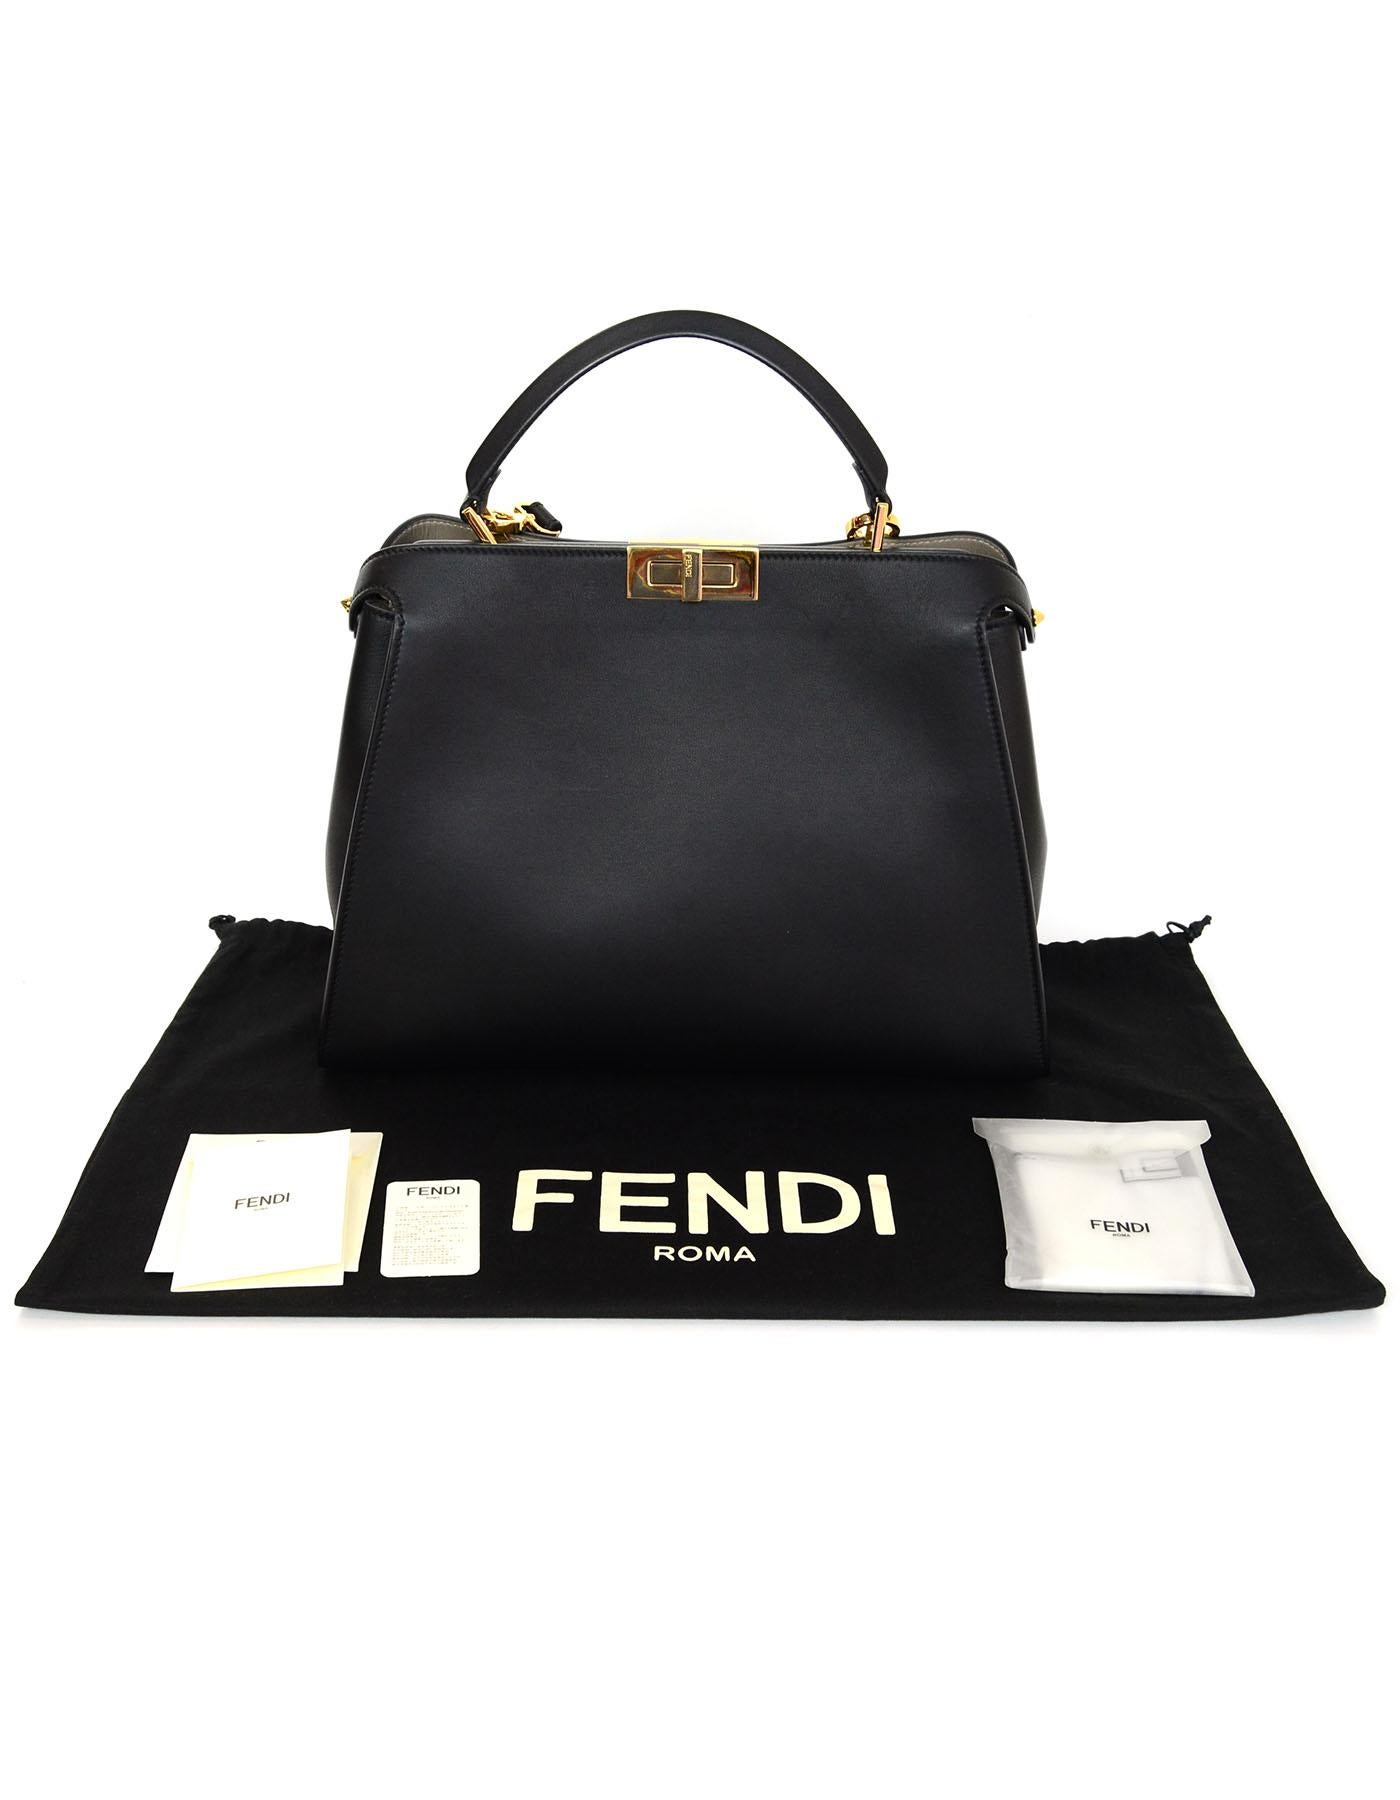 156a5a16e2 ... get fendi black and beige calf leather peekaboo essential satchel bag  for sale 5 c949c 4d1c6 ...